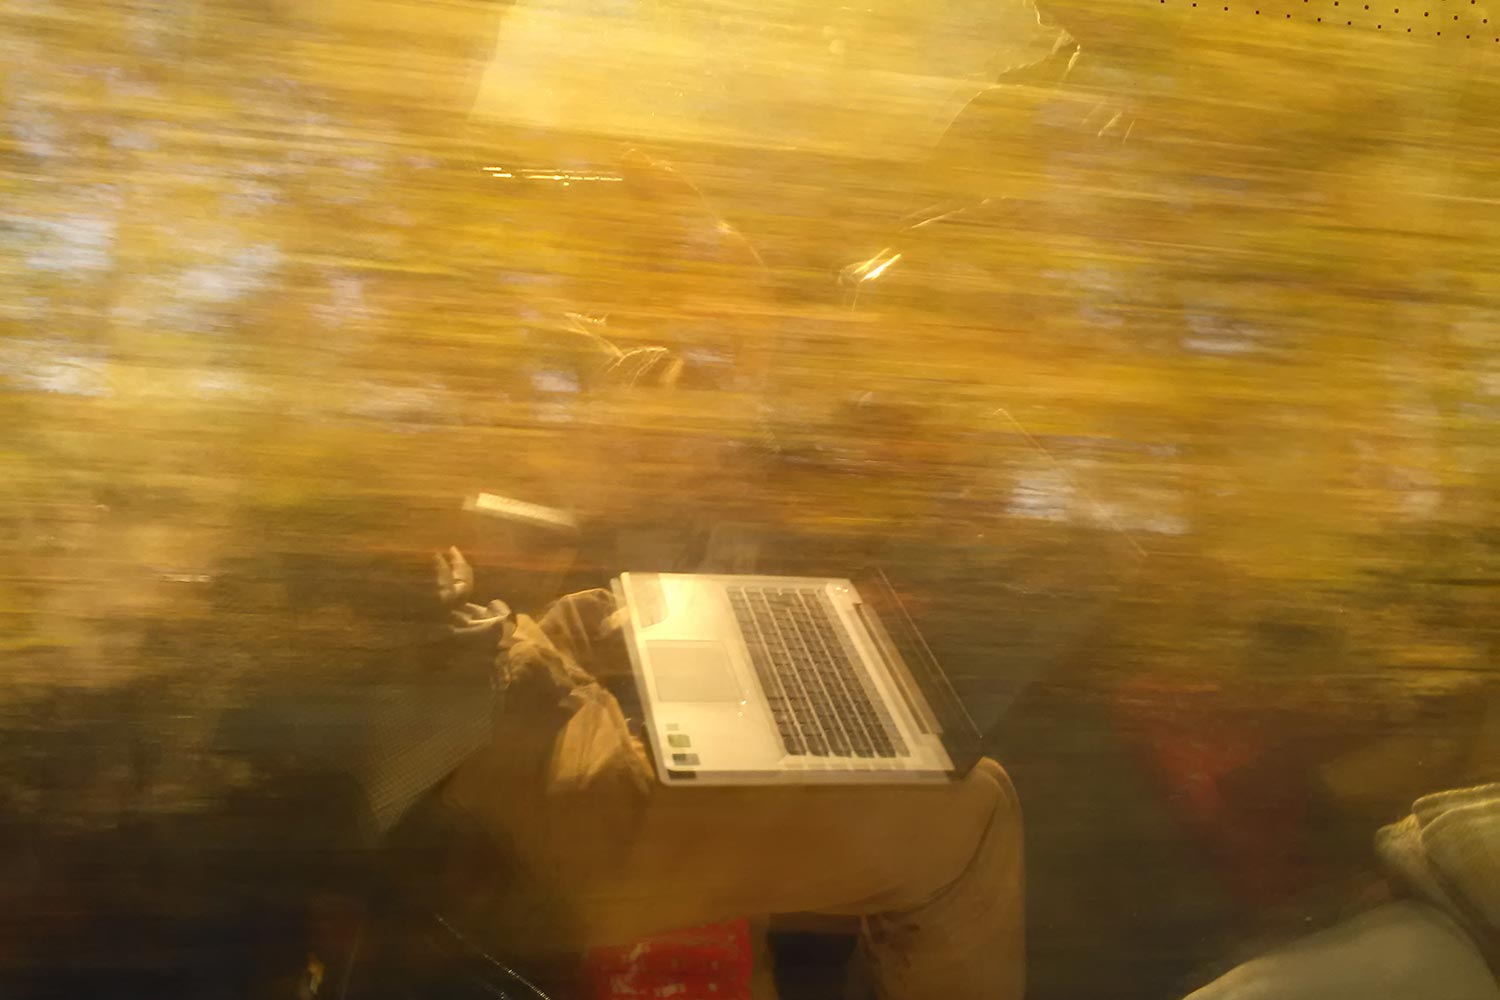 Image: A blurred reflection of a person with a laptop.